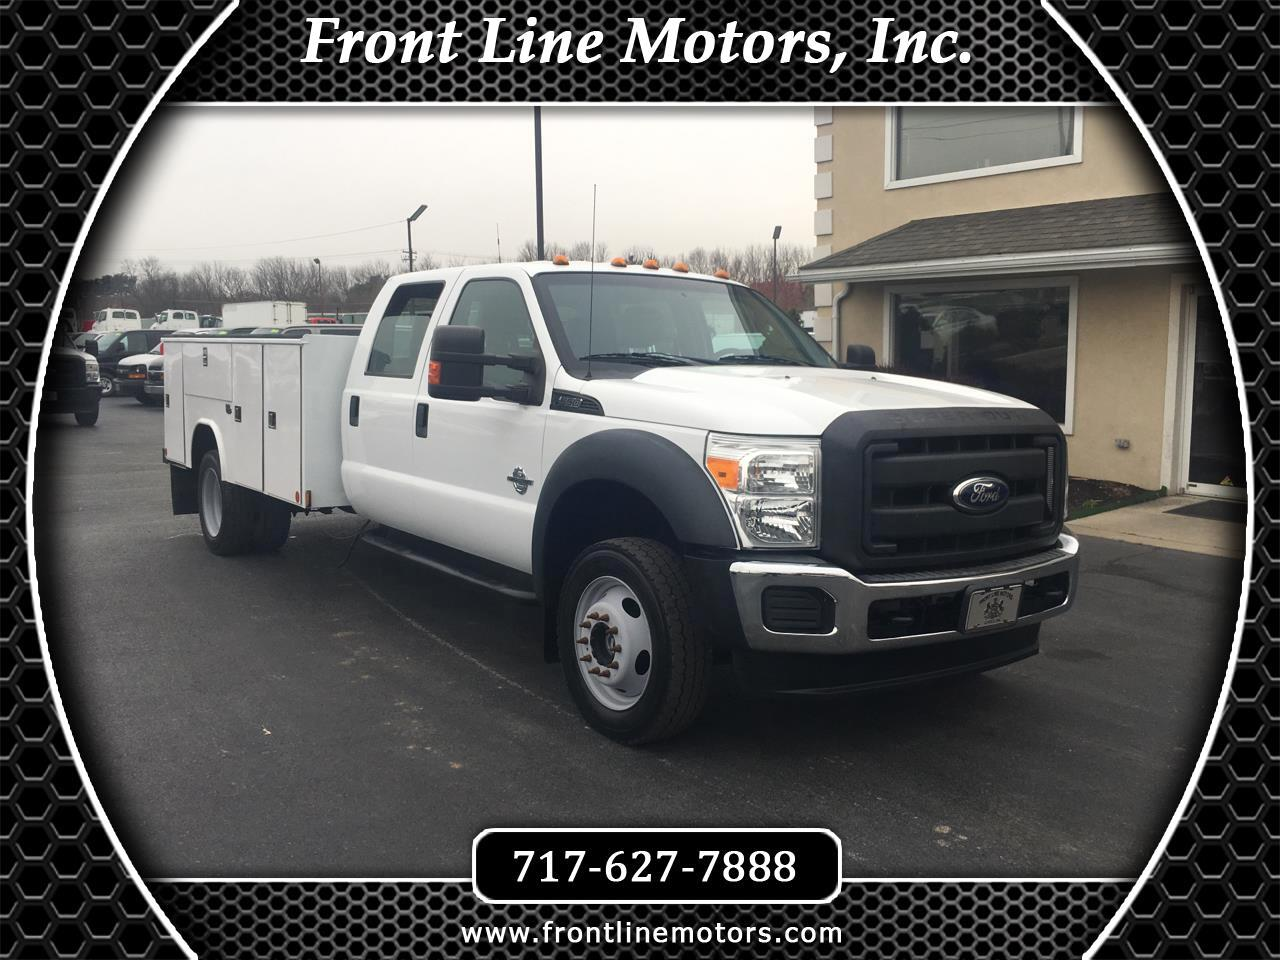 2012 Ford Super Duty F-550 DRW 4WD Crew Cab 200